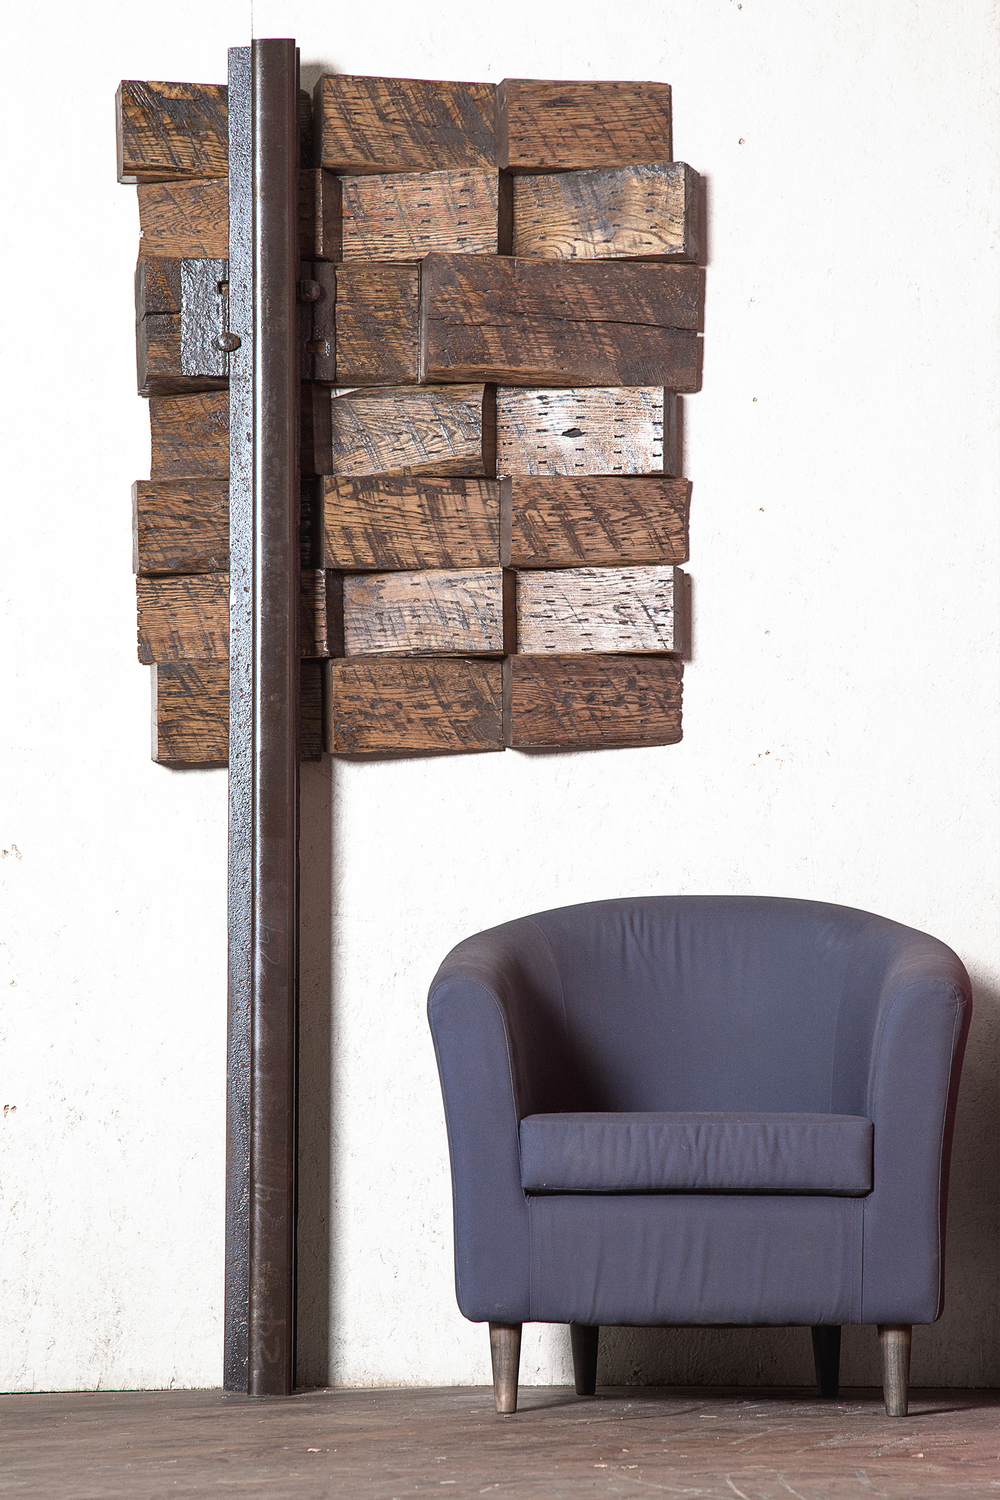 Timber and Railroad Steel Wall Art from Rail Yard Studios